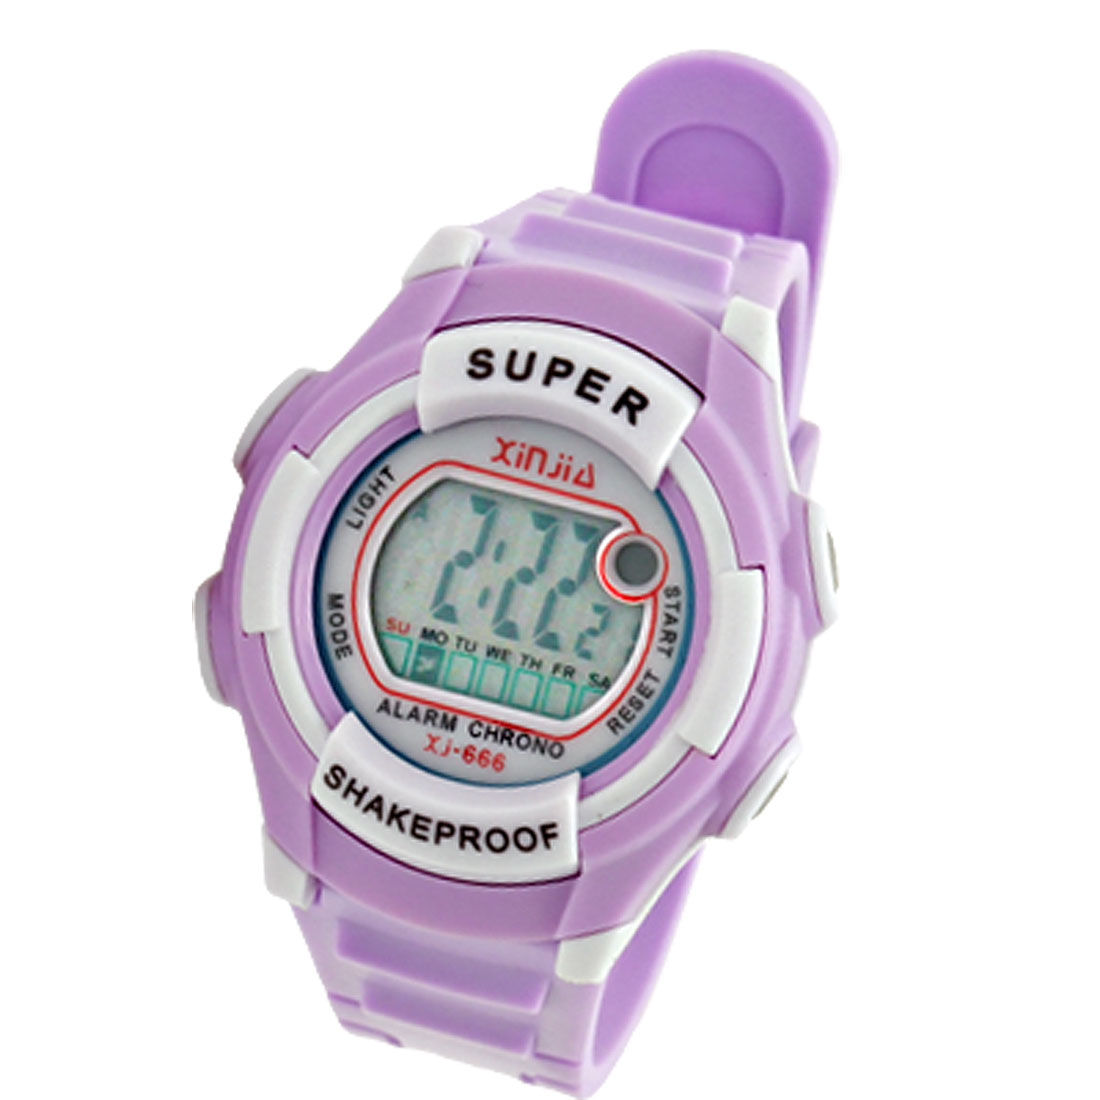 LCD Digital Sports Alarm Watch Stopwatch for Kids Children